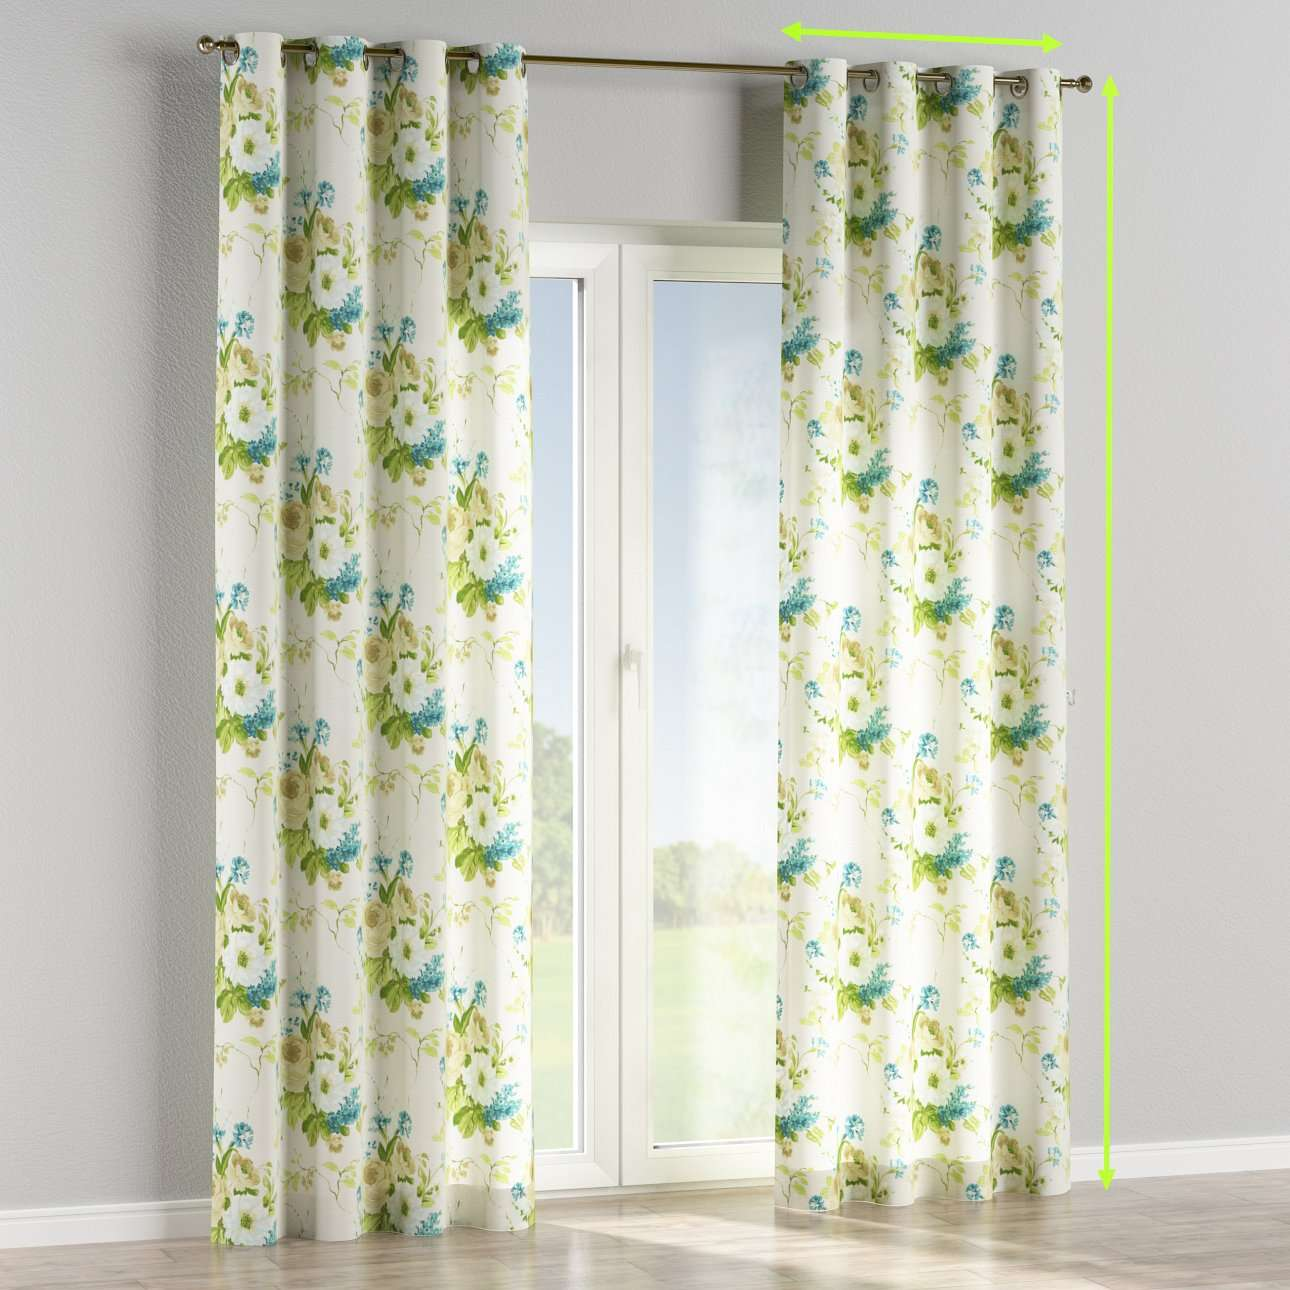 Eyelet lined curtains in collection Mirella, fabric: 141-15